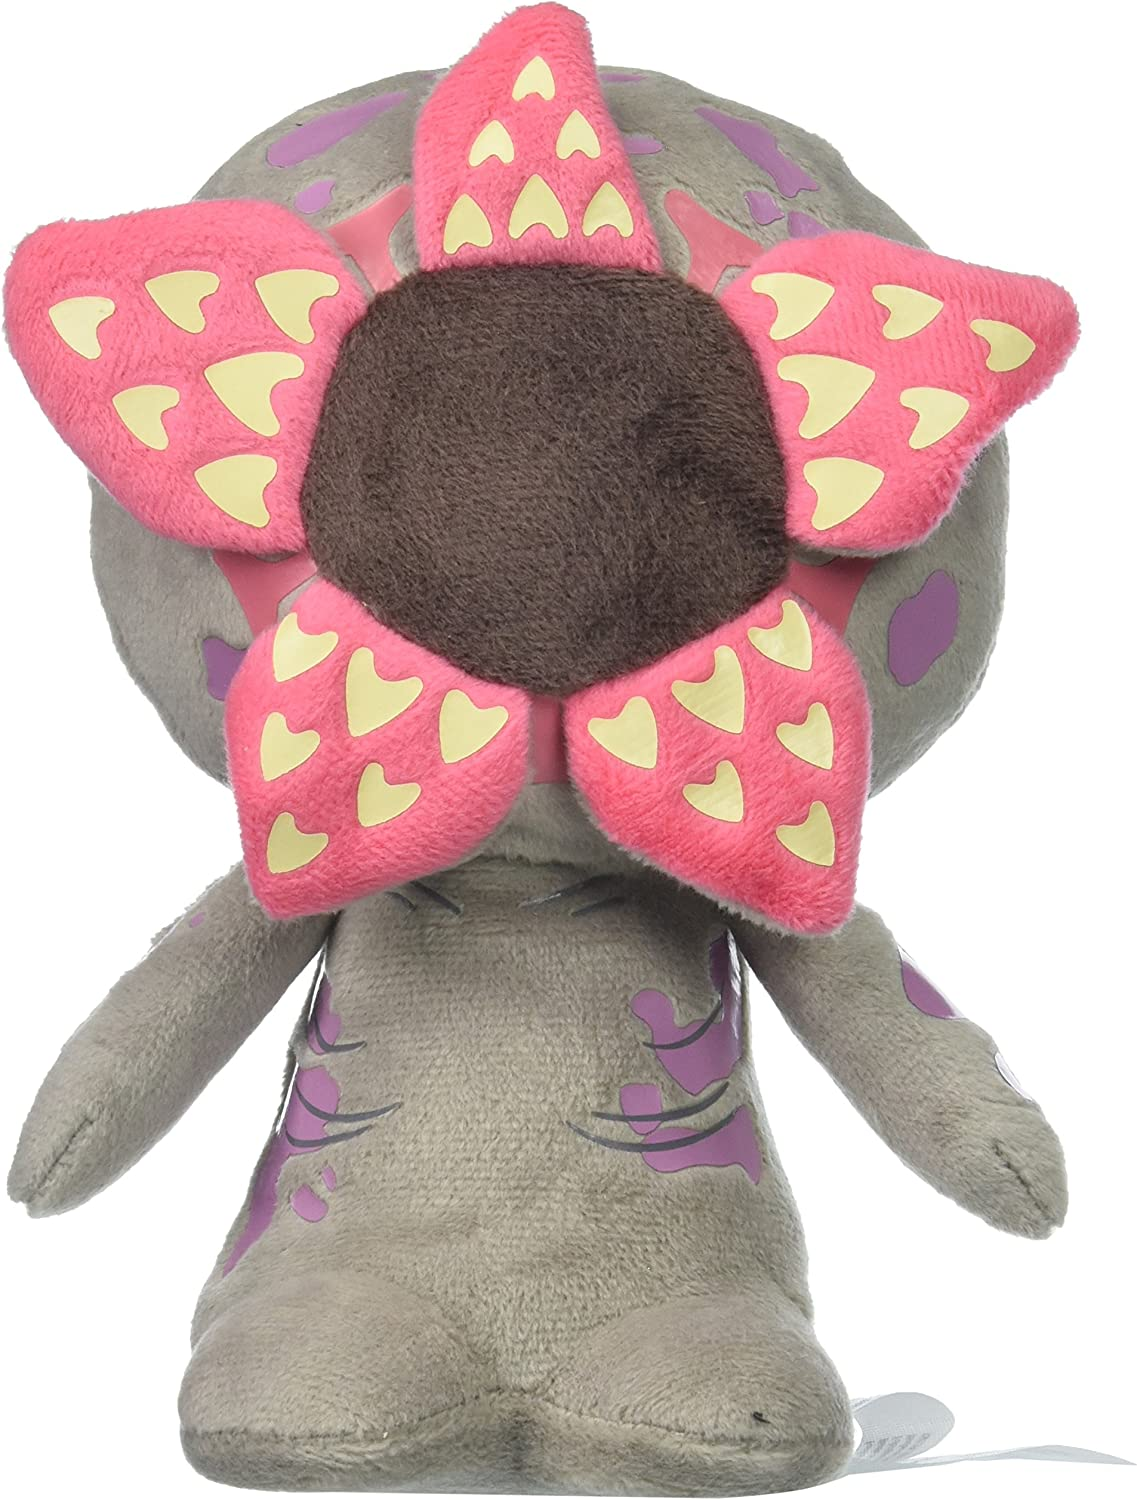 Peluche Stranger Things Demogorgon: Amazon.es: Juguetes y juegos